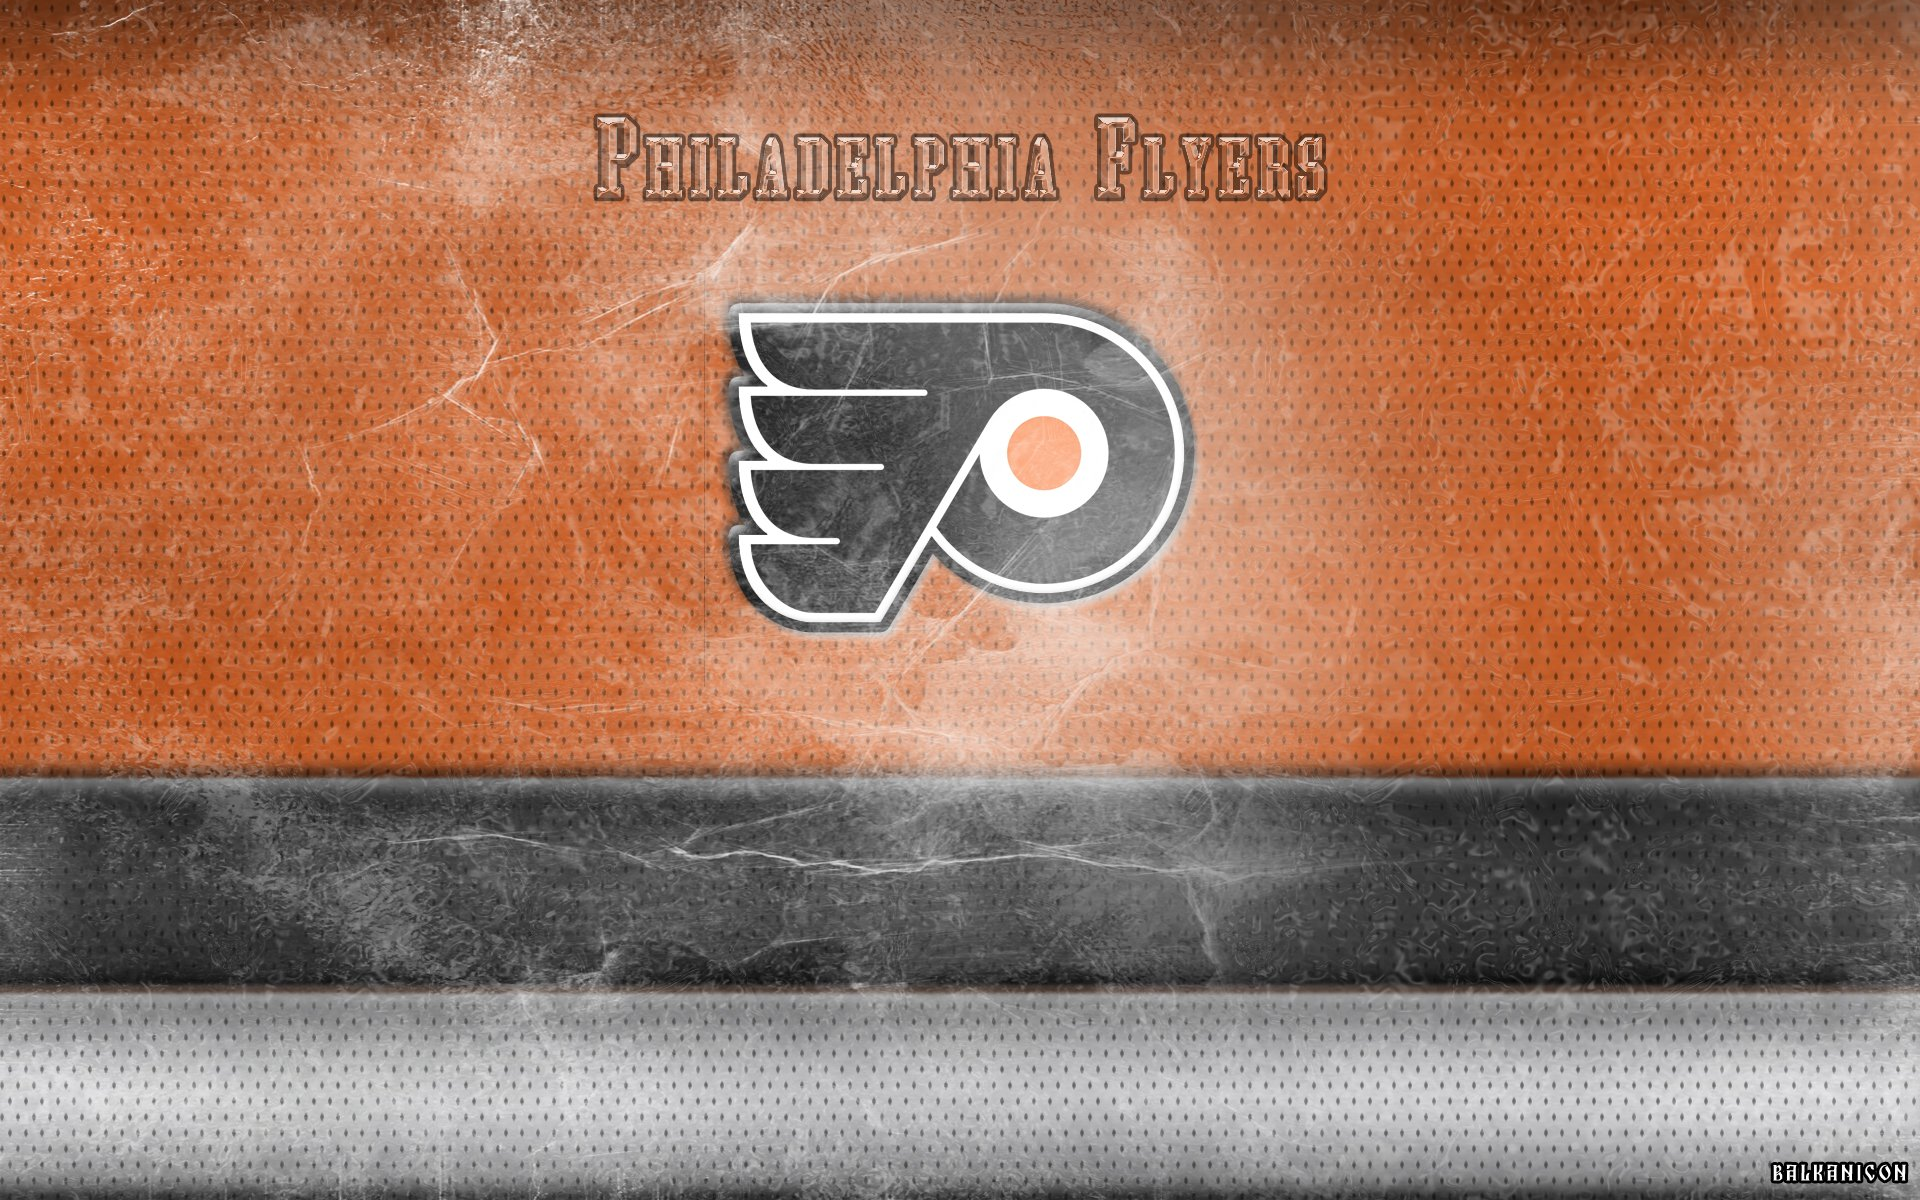 PHILADELPHIA FLYERS nhl hockey 16 wallpaper 1920x1200 344851 1920x1200